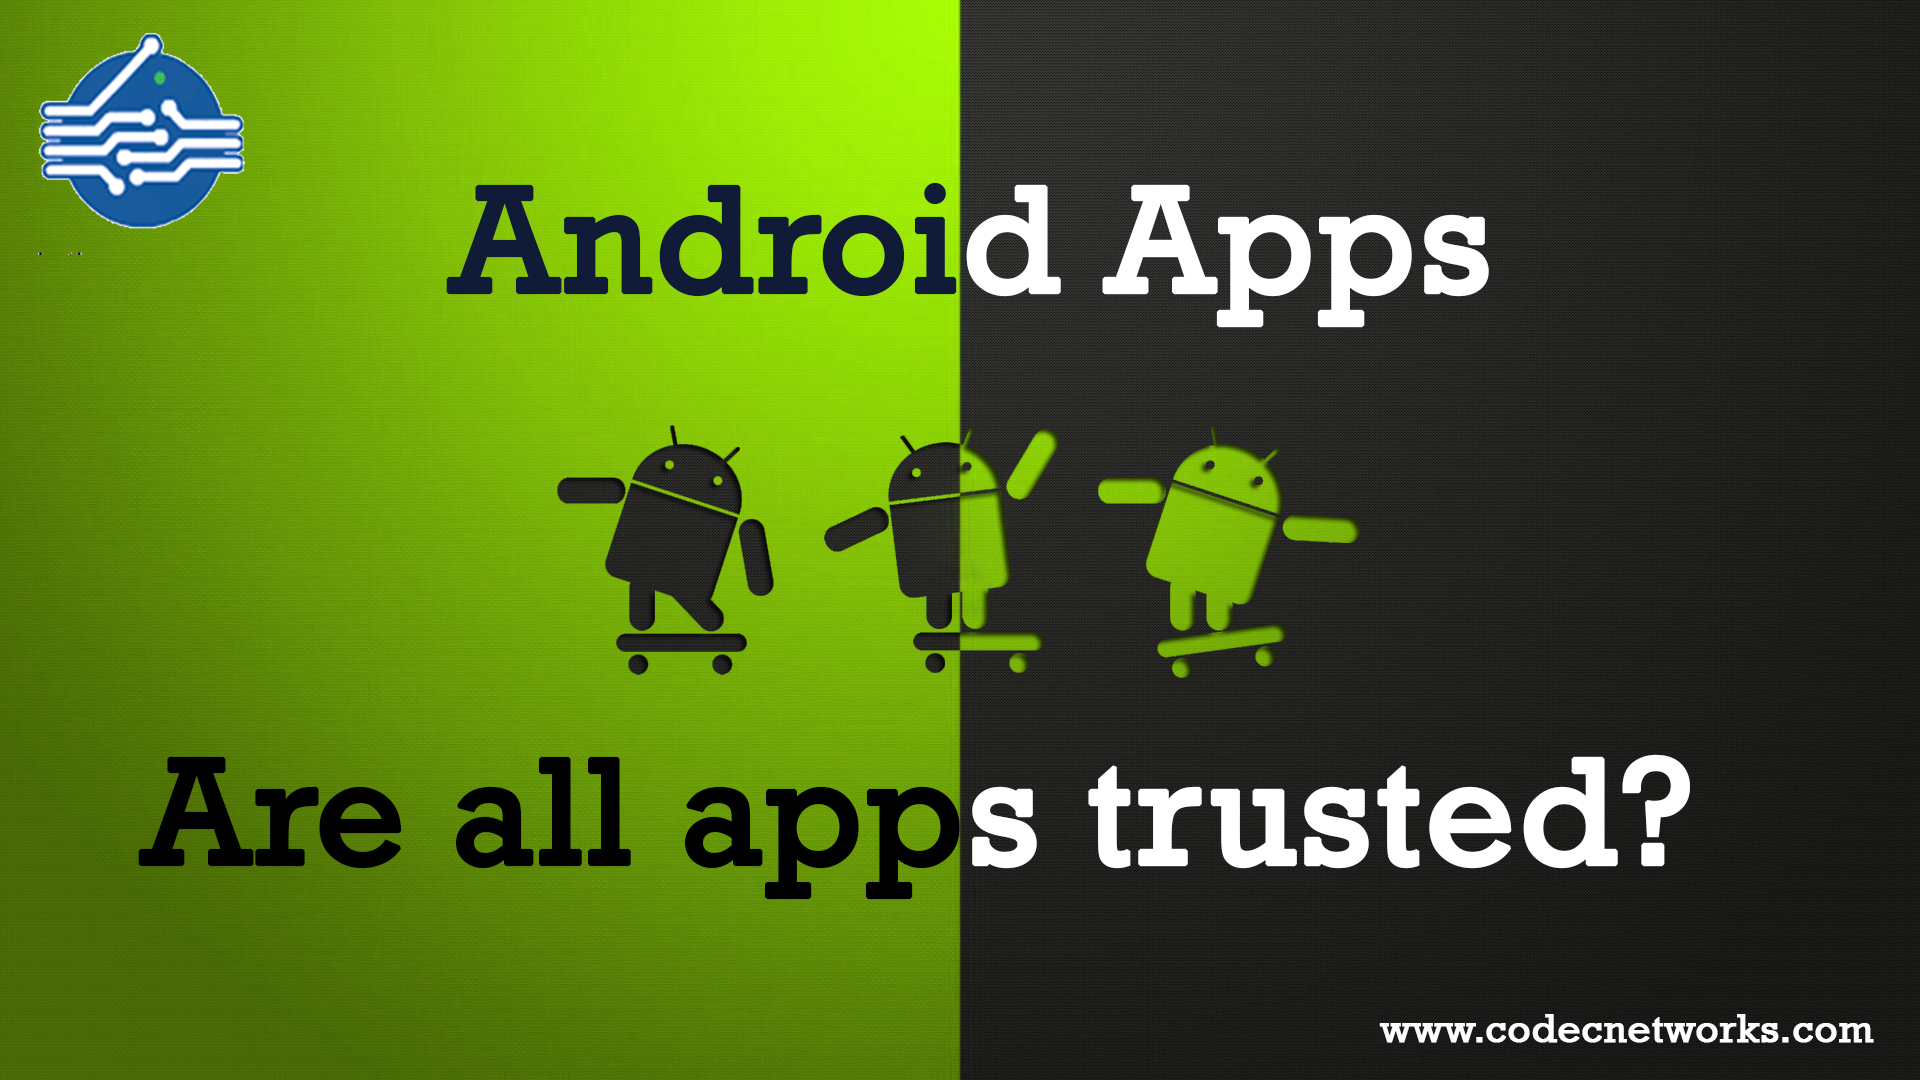 All Android Apps trusted